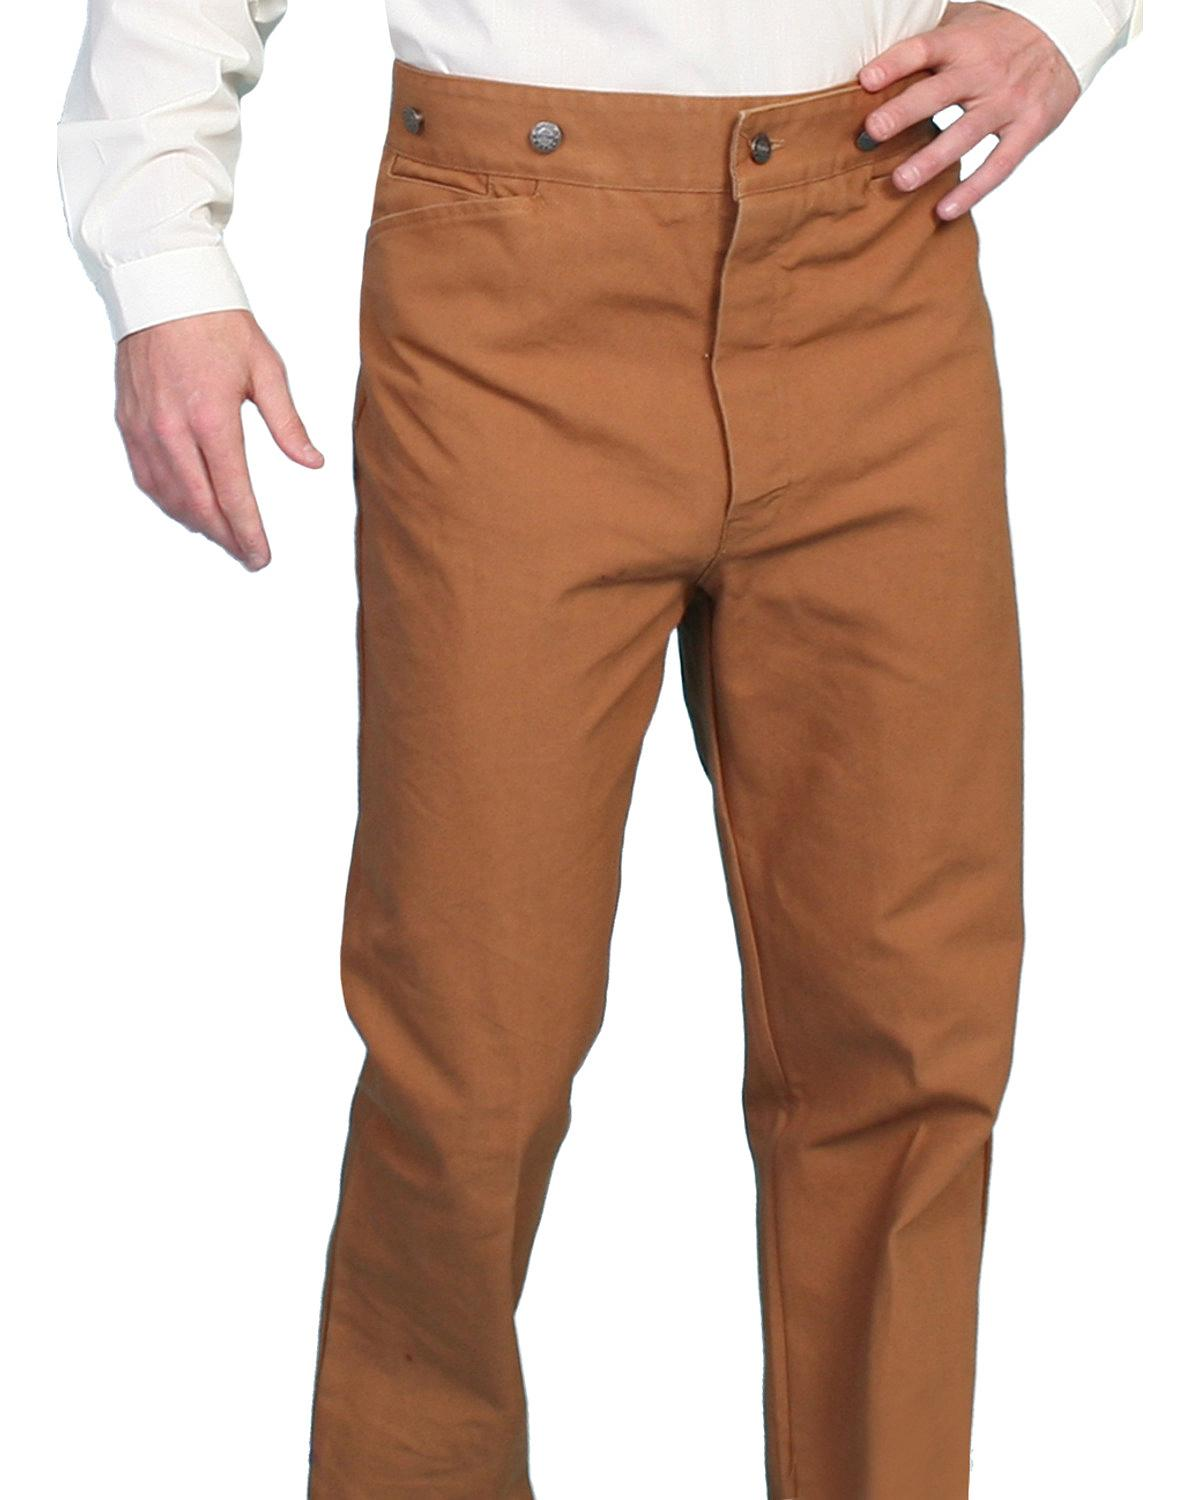 Wahmaker by Scully Canvas Saddle Seat Pants 564552 BRN